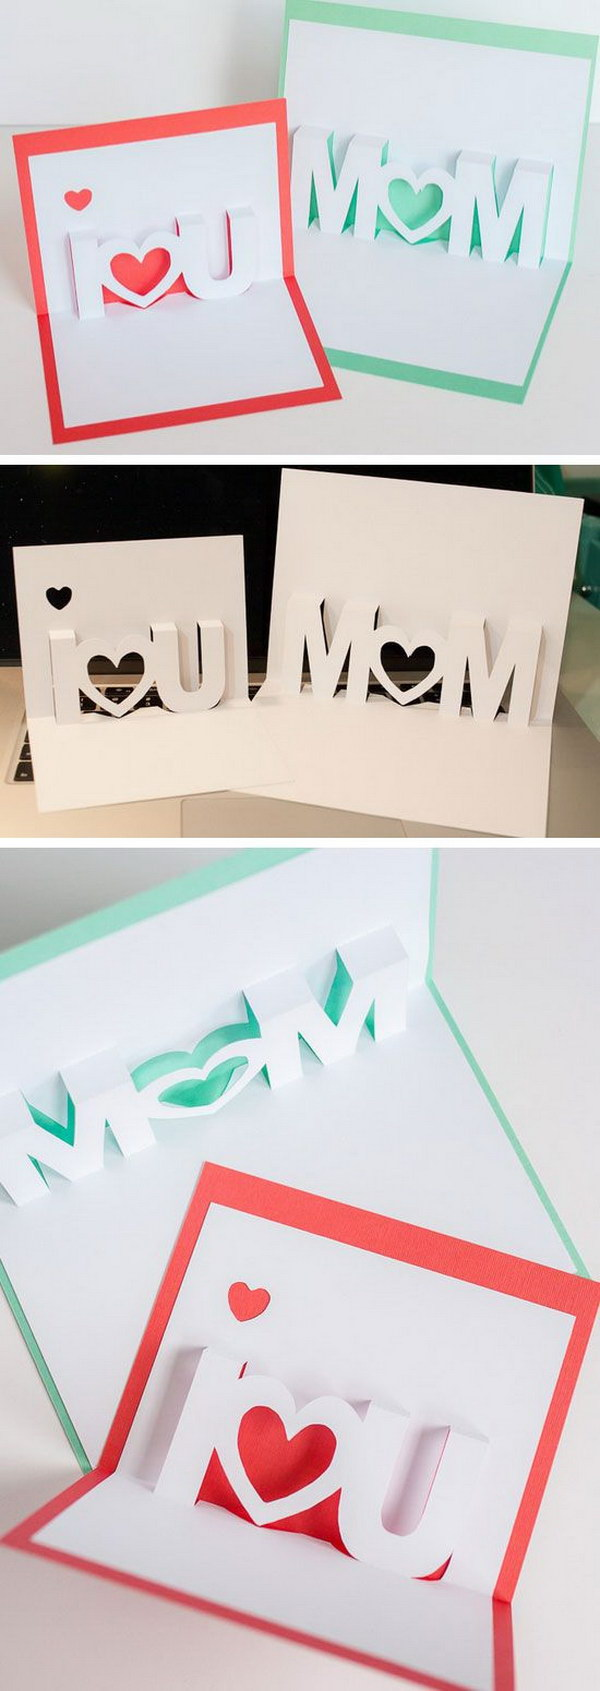 I LOVE YOU POP UP Cards with Free Silhouette Cut Files.